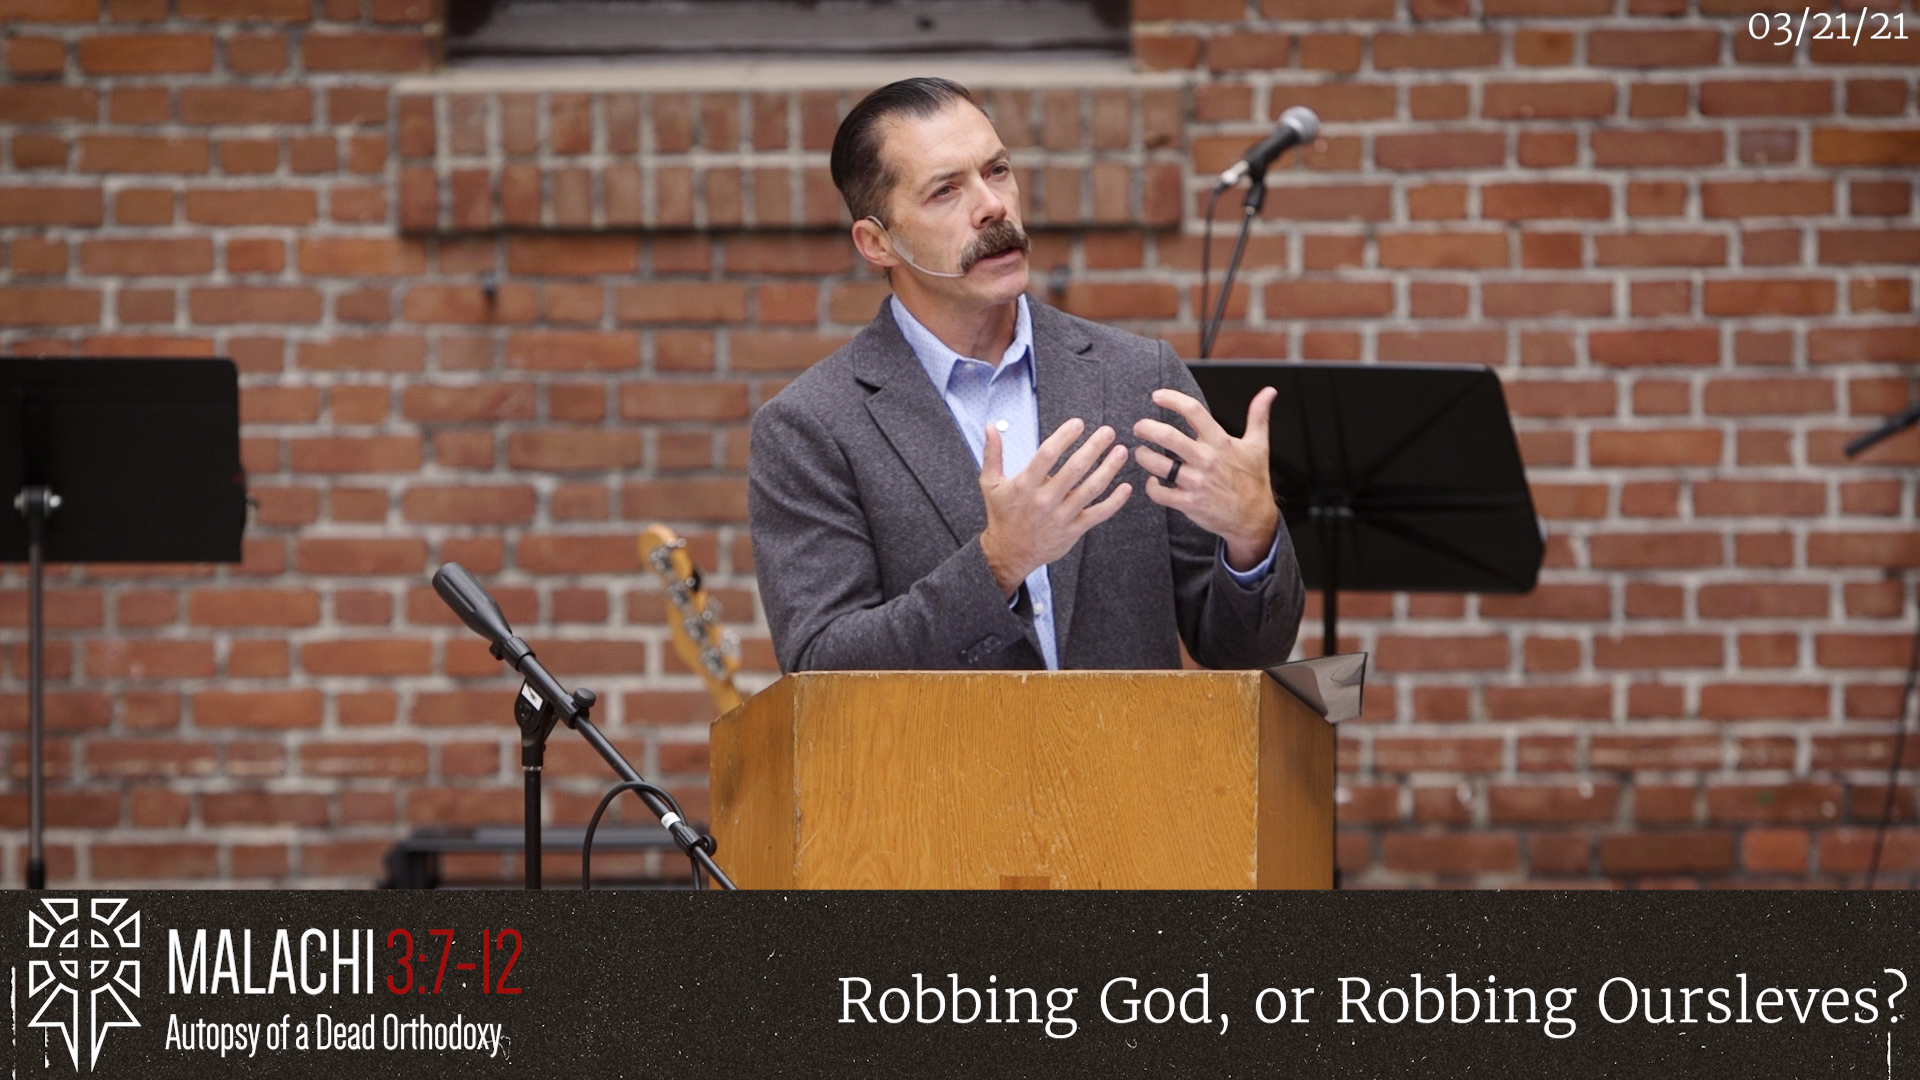 Robbing God, Our Robbing Ourselves?